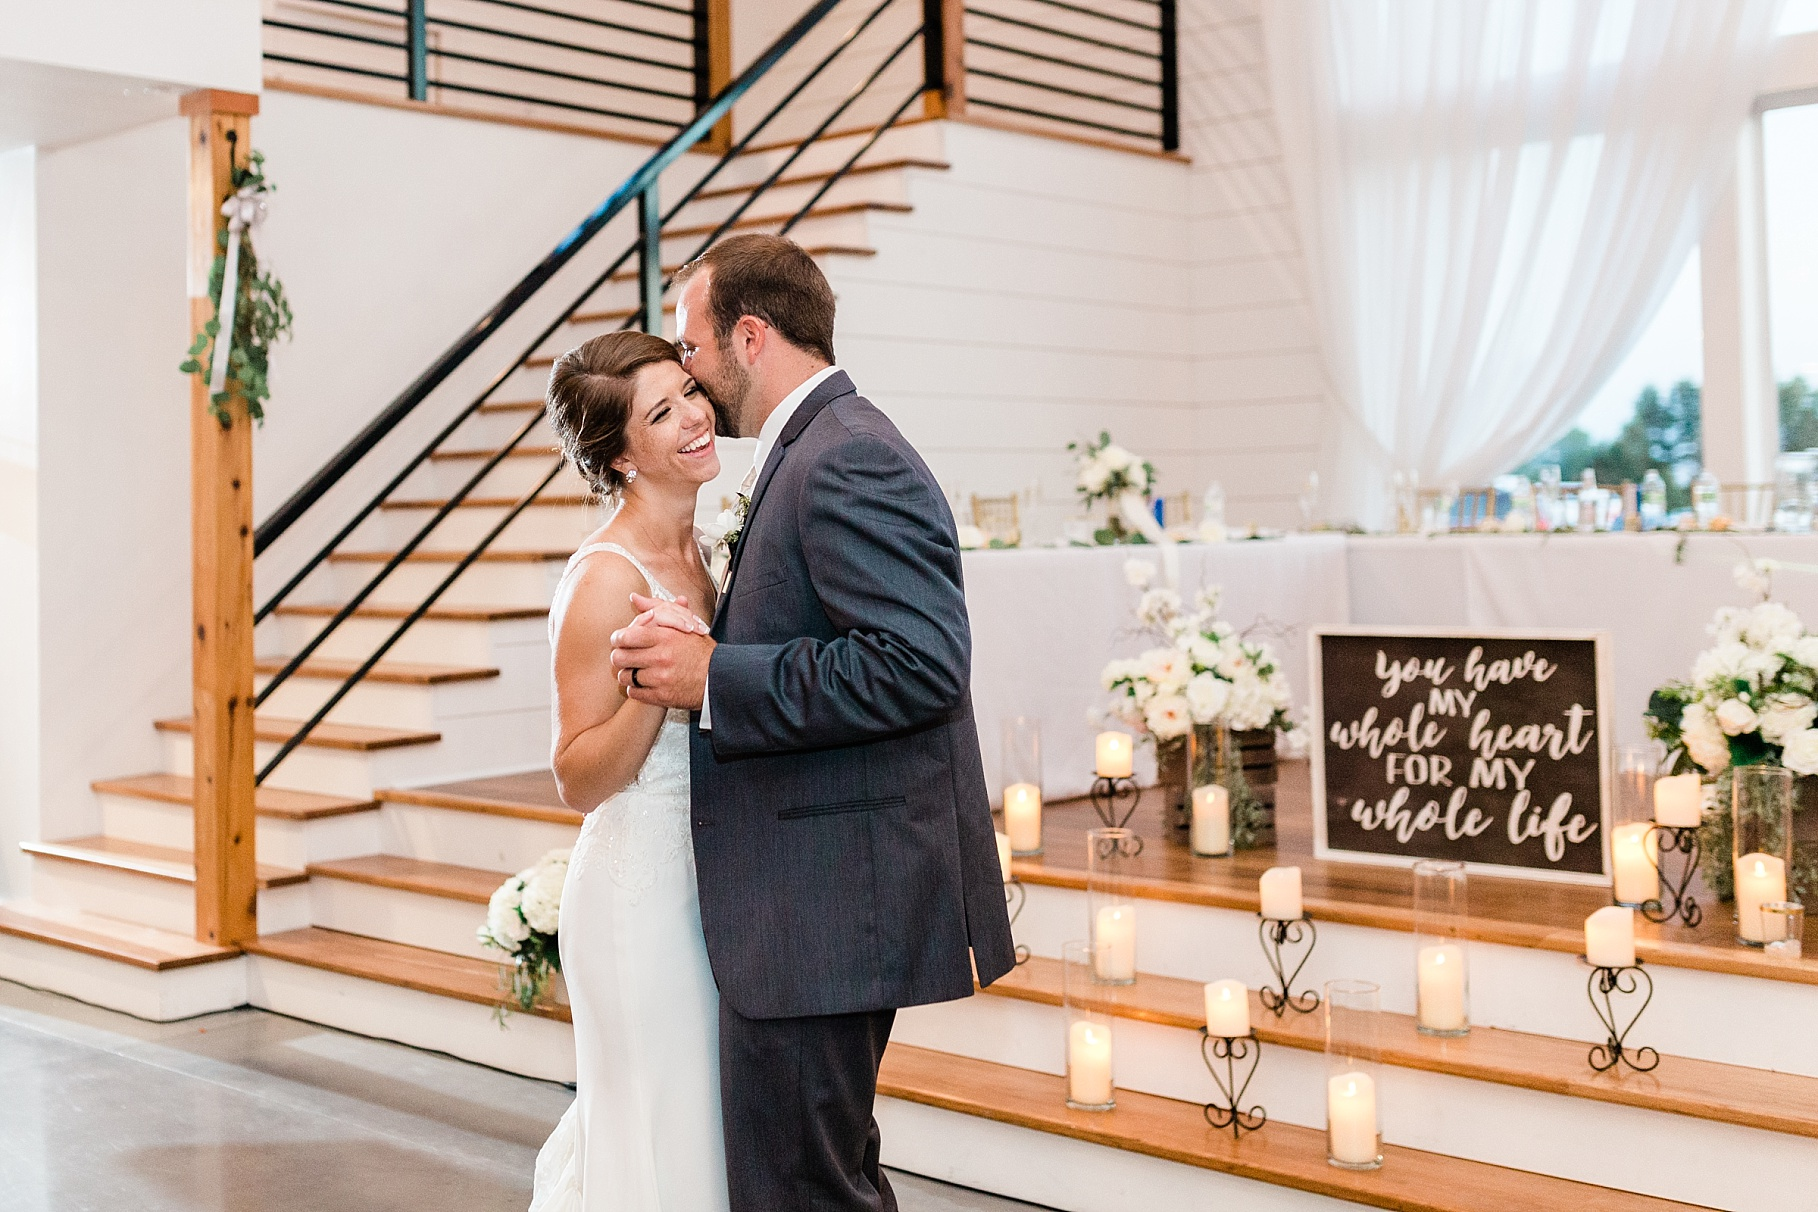 Wedding Ceremony with Confetti Pop at Emerson Fields Venue by Associate Wedding Photographer for Kelsi Kliethermes Photography Best Columbia Missouri and Maui Hawaii Wedding Photographer_0024.jpg